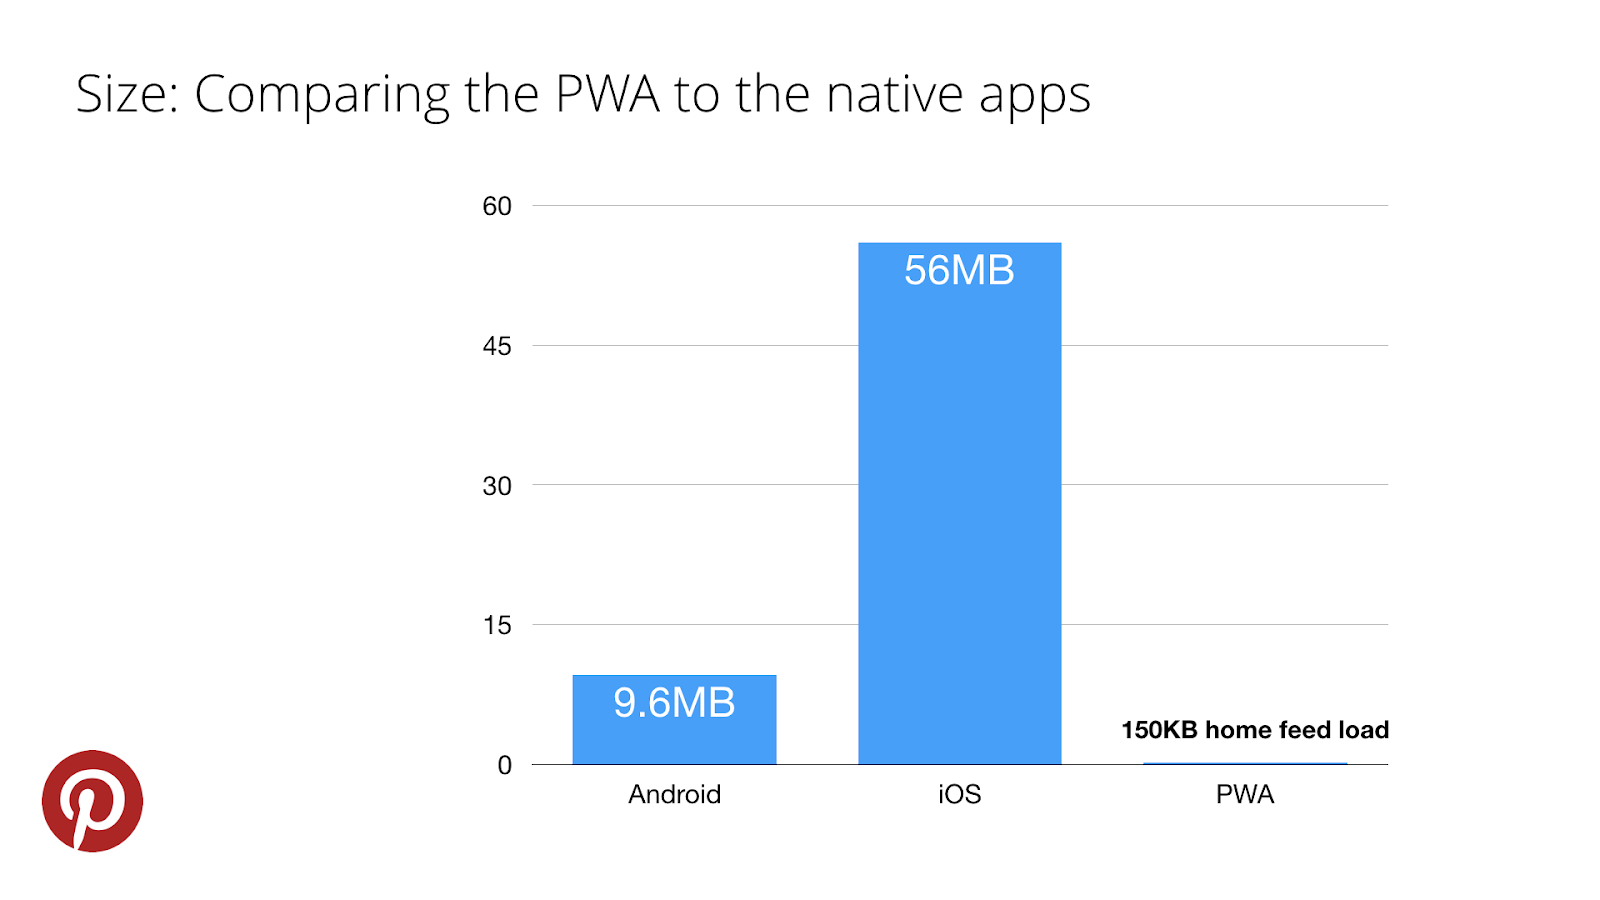 comparing progressive web apps to native apps size